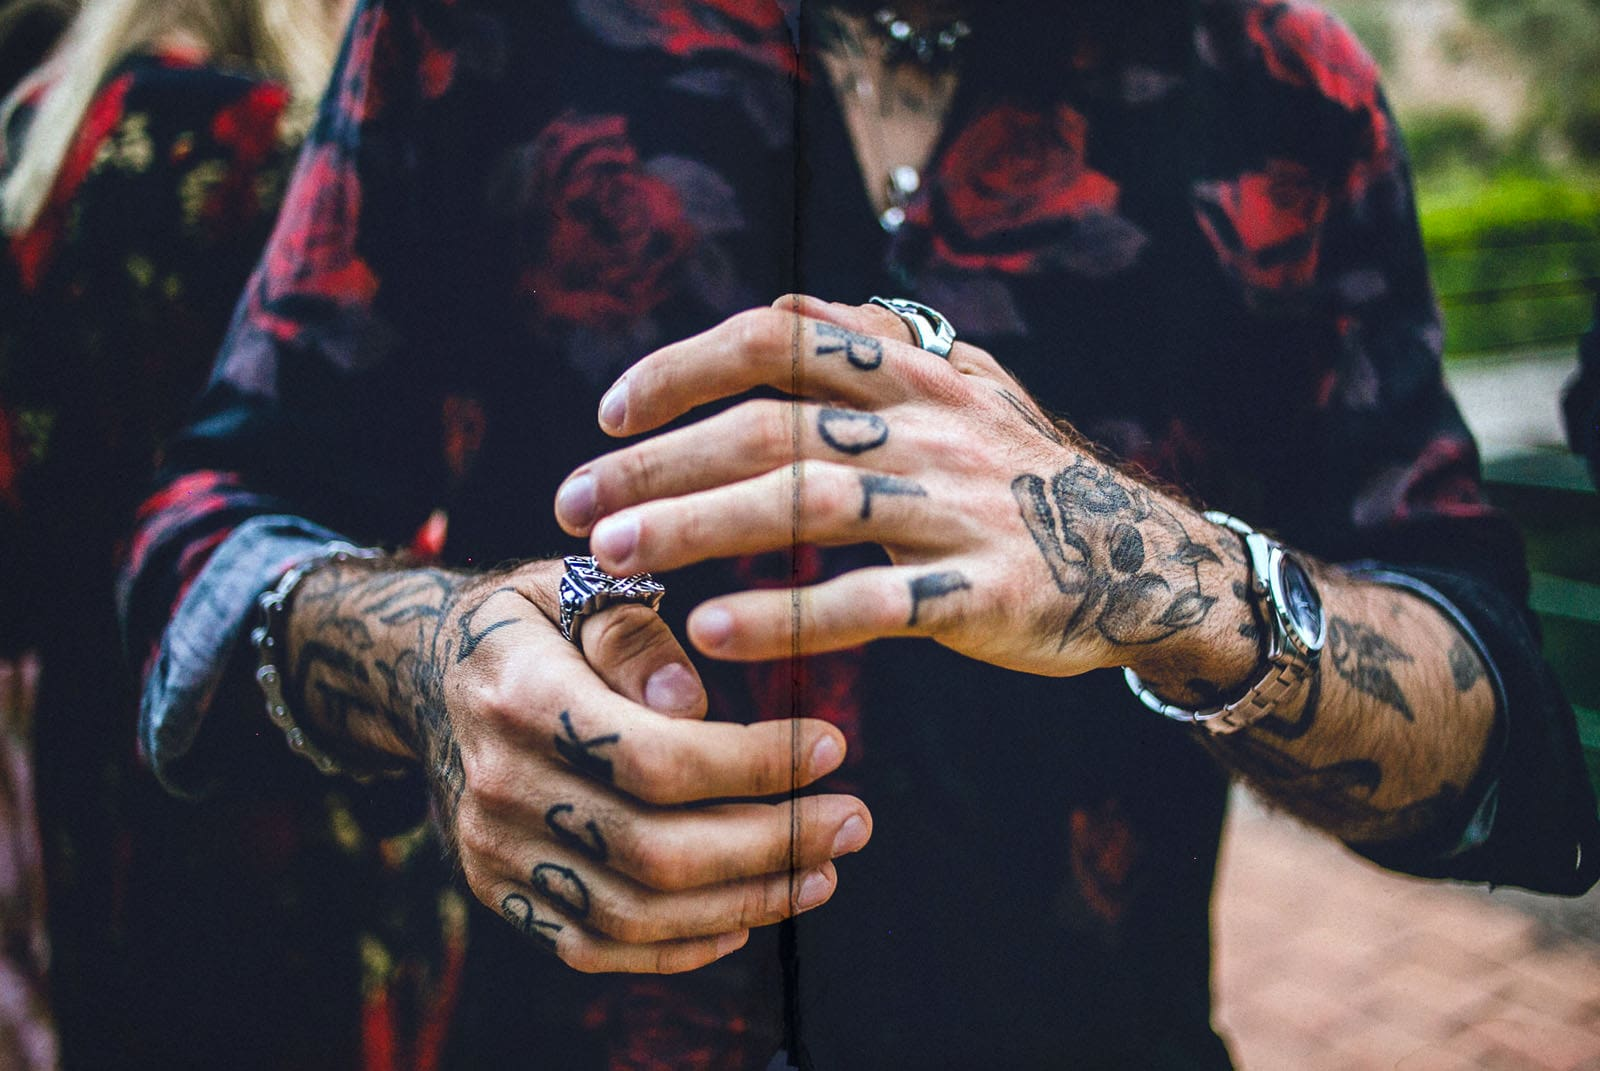 hands with tattoos of rock and roll